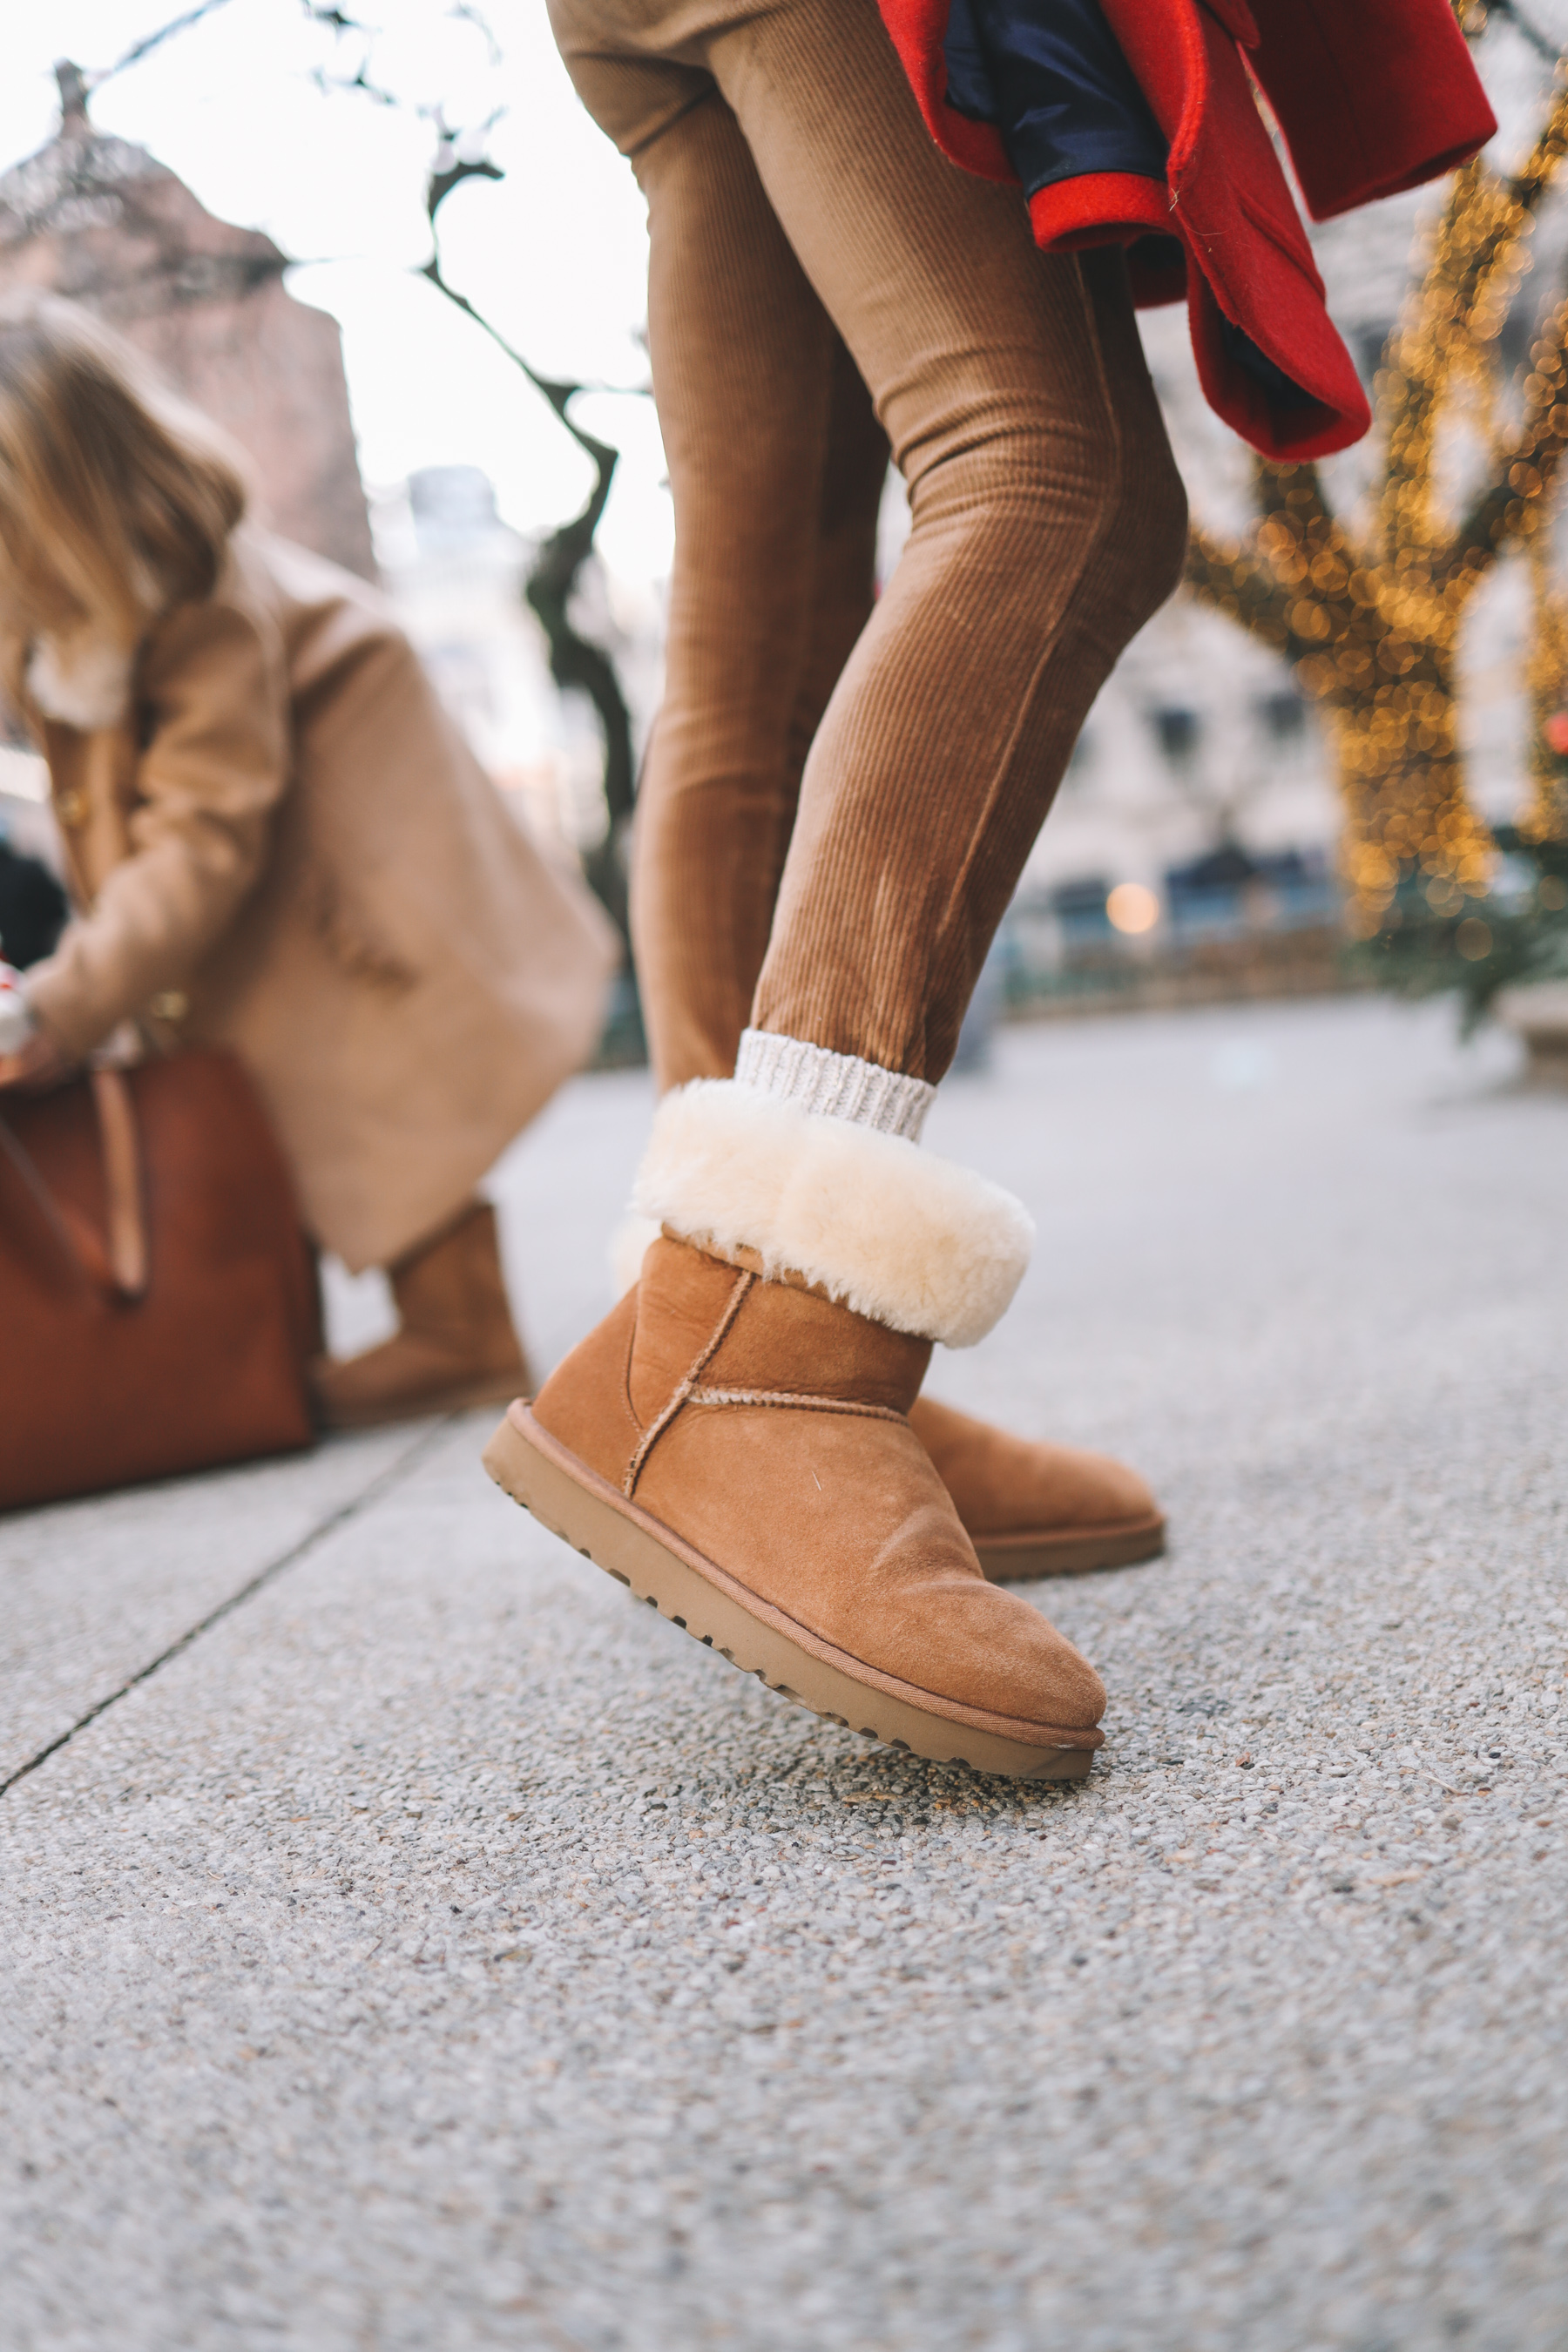 The Larkin Girls' Favorite Uggs